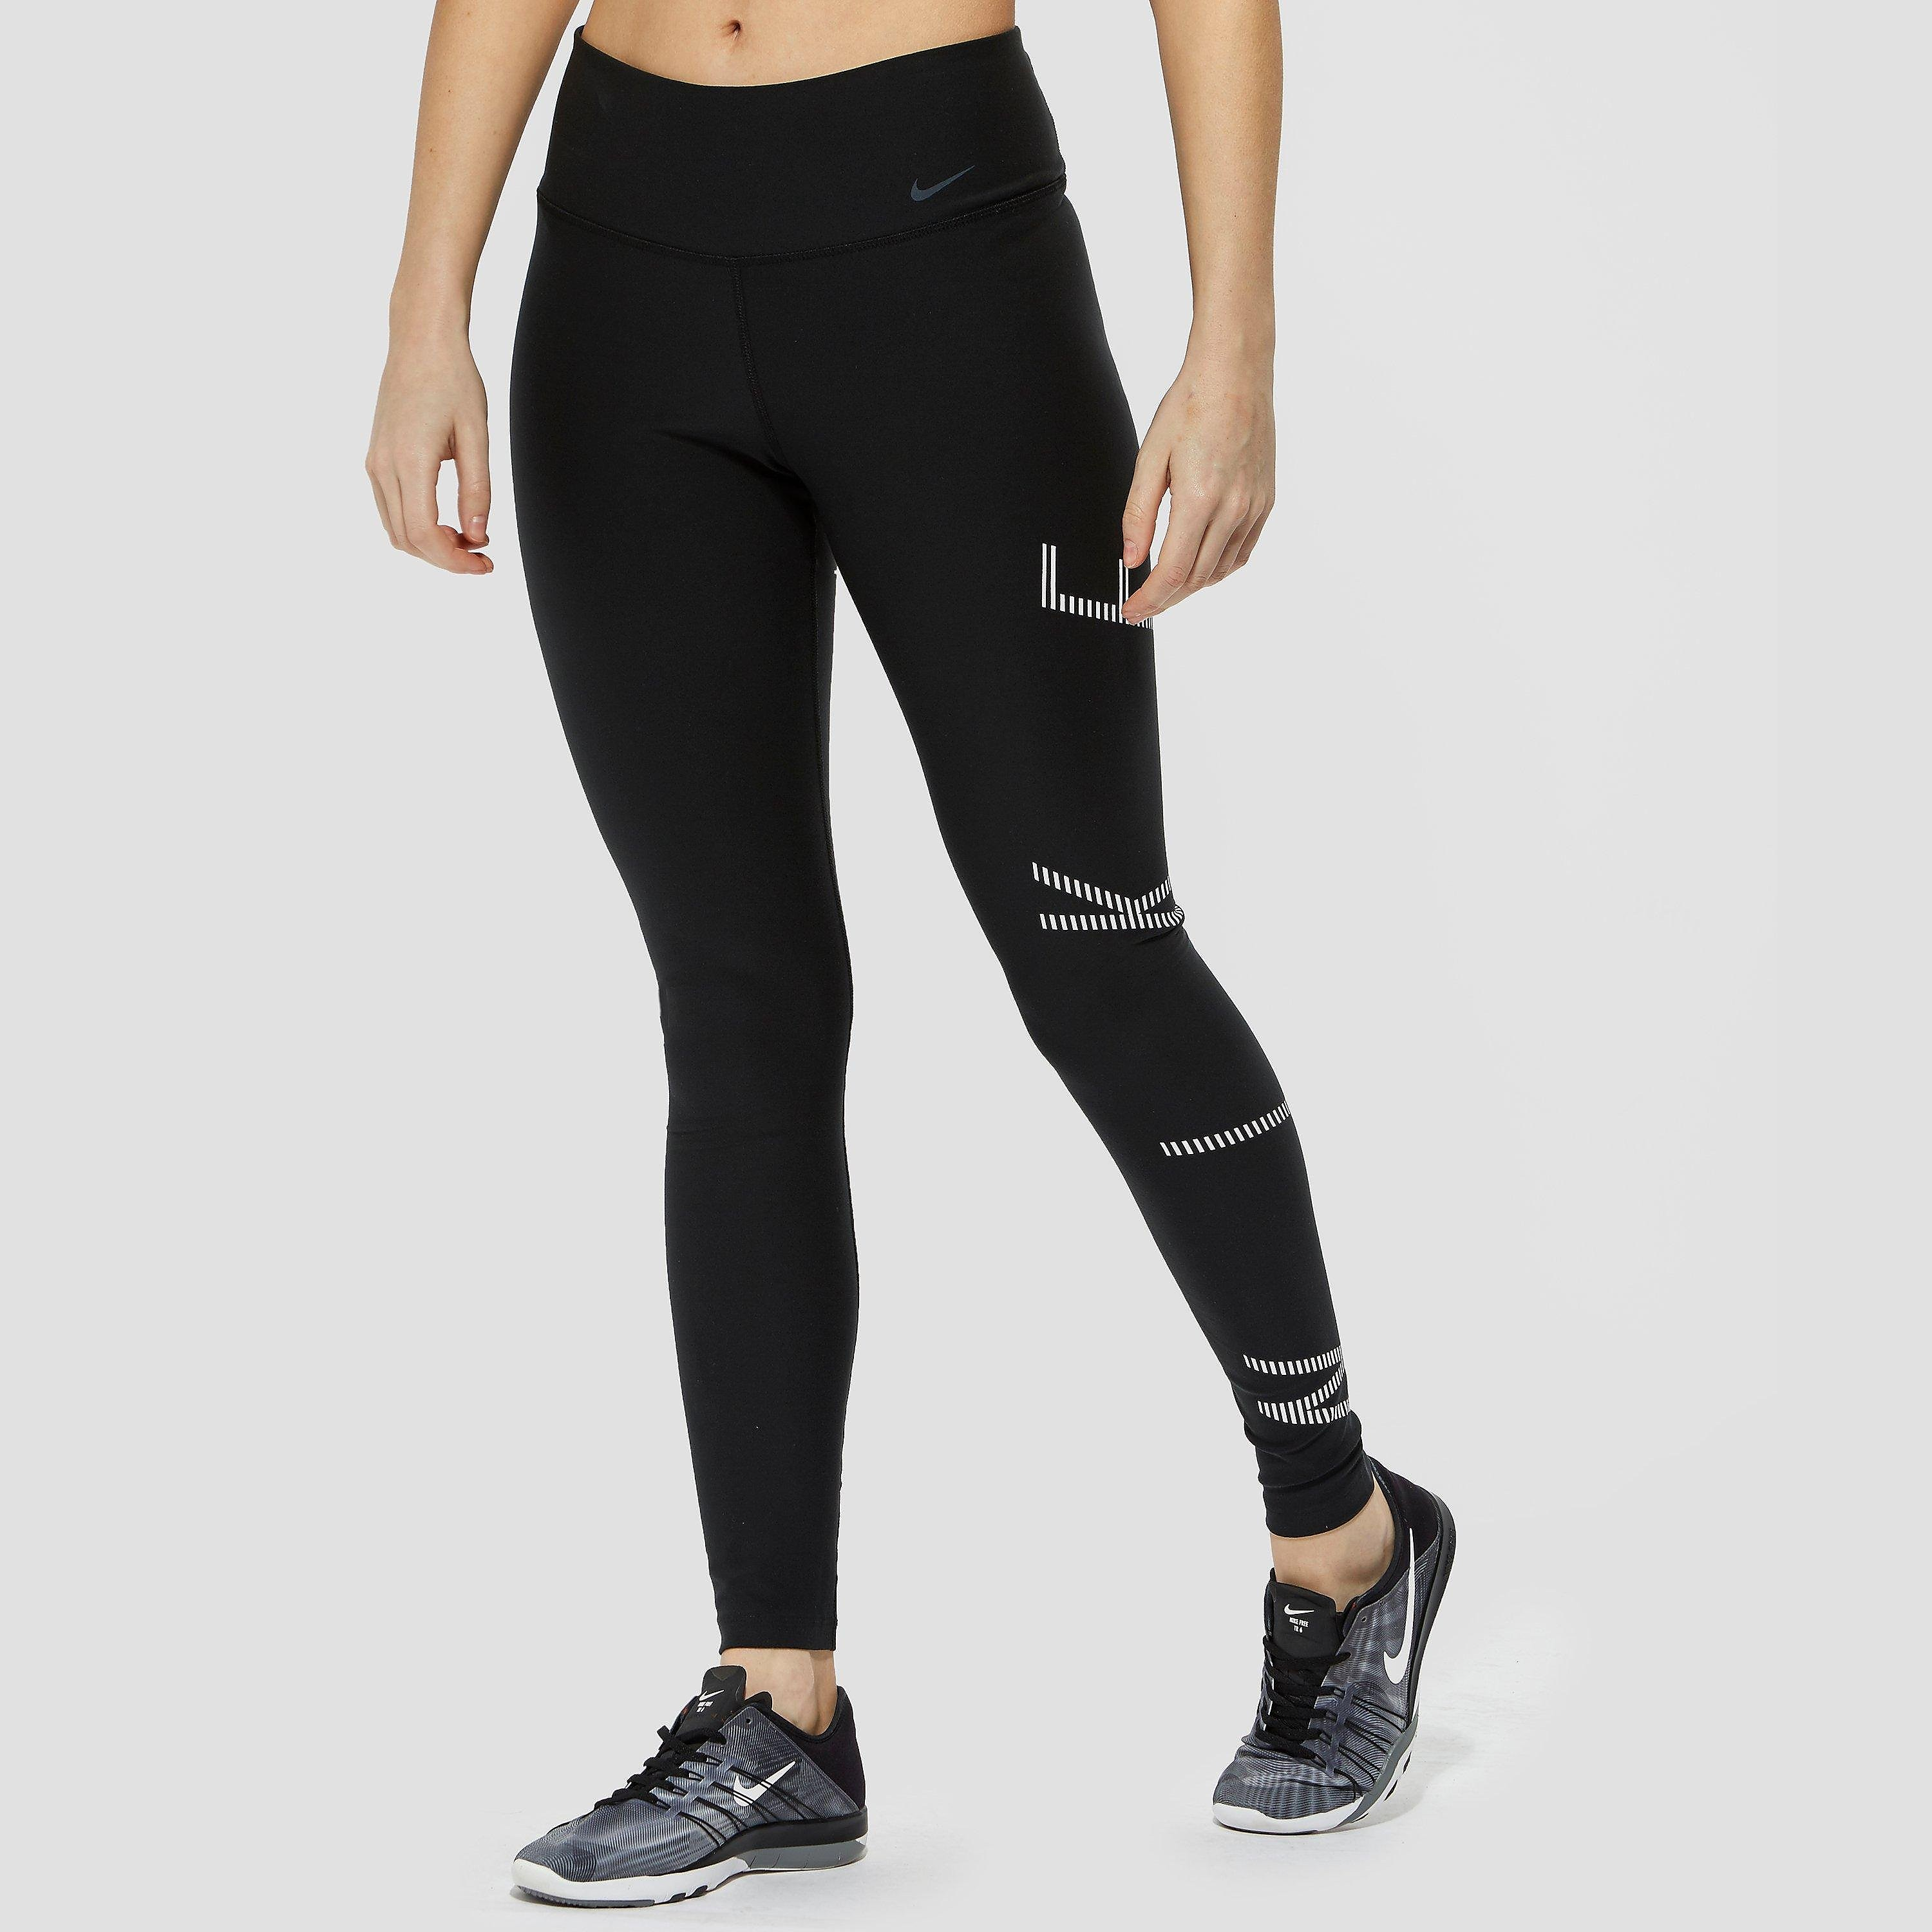 NIKE POWER LEGEND GRAPHIC TIGHT